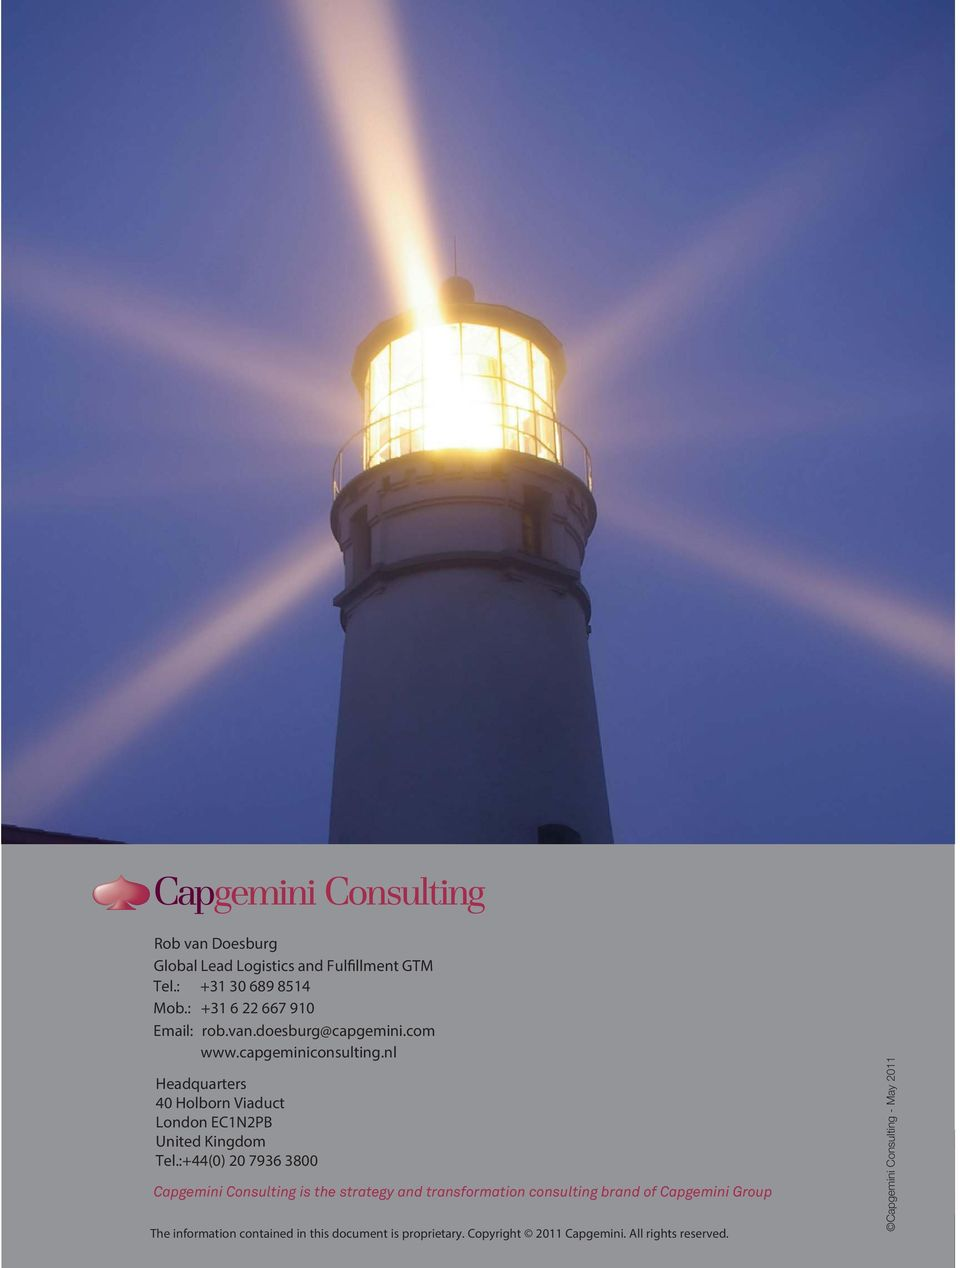 :+44(0) 20 7936 3800 Capgemini Consulting is the strategy and transformation consulting brand of Capgemini Group The